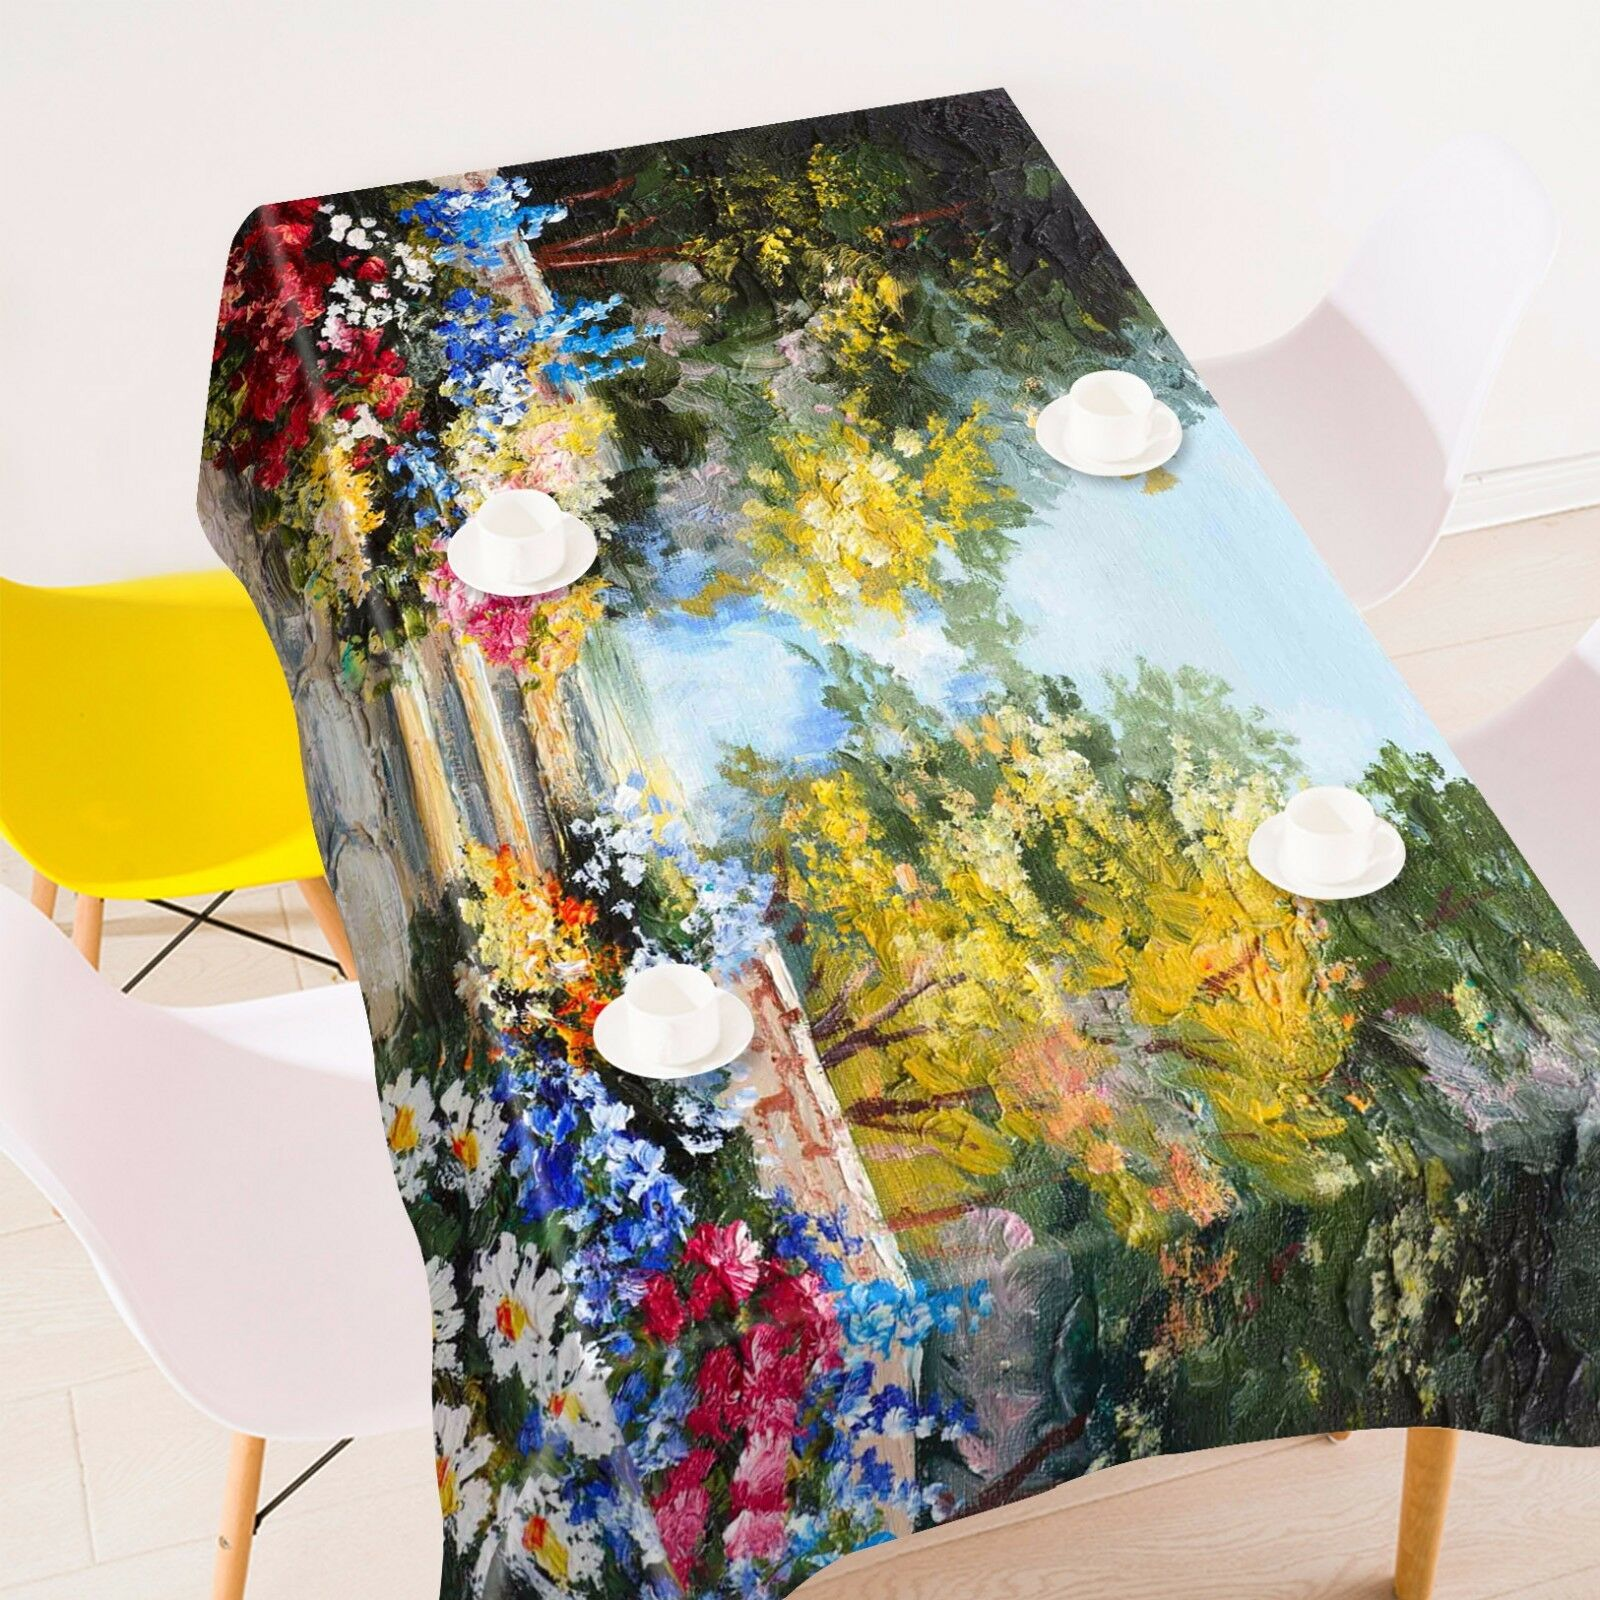 3D Painted 46 Tablecloth Table Cover Cloth Birthday Party AJ WALLPAPER UK Lemon